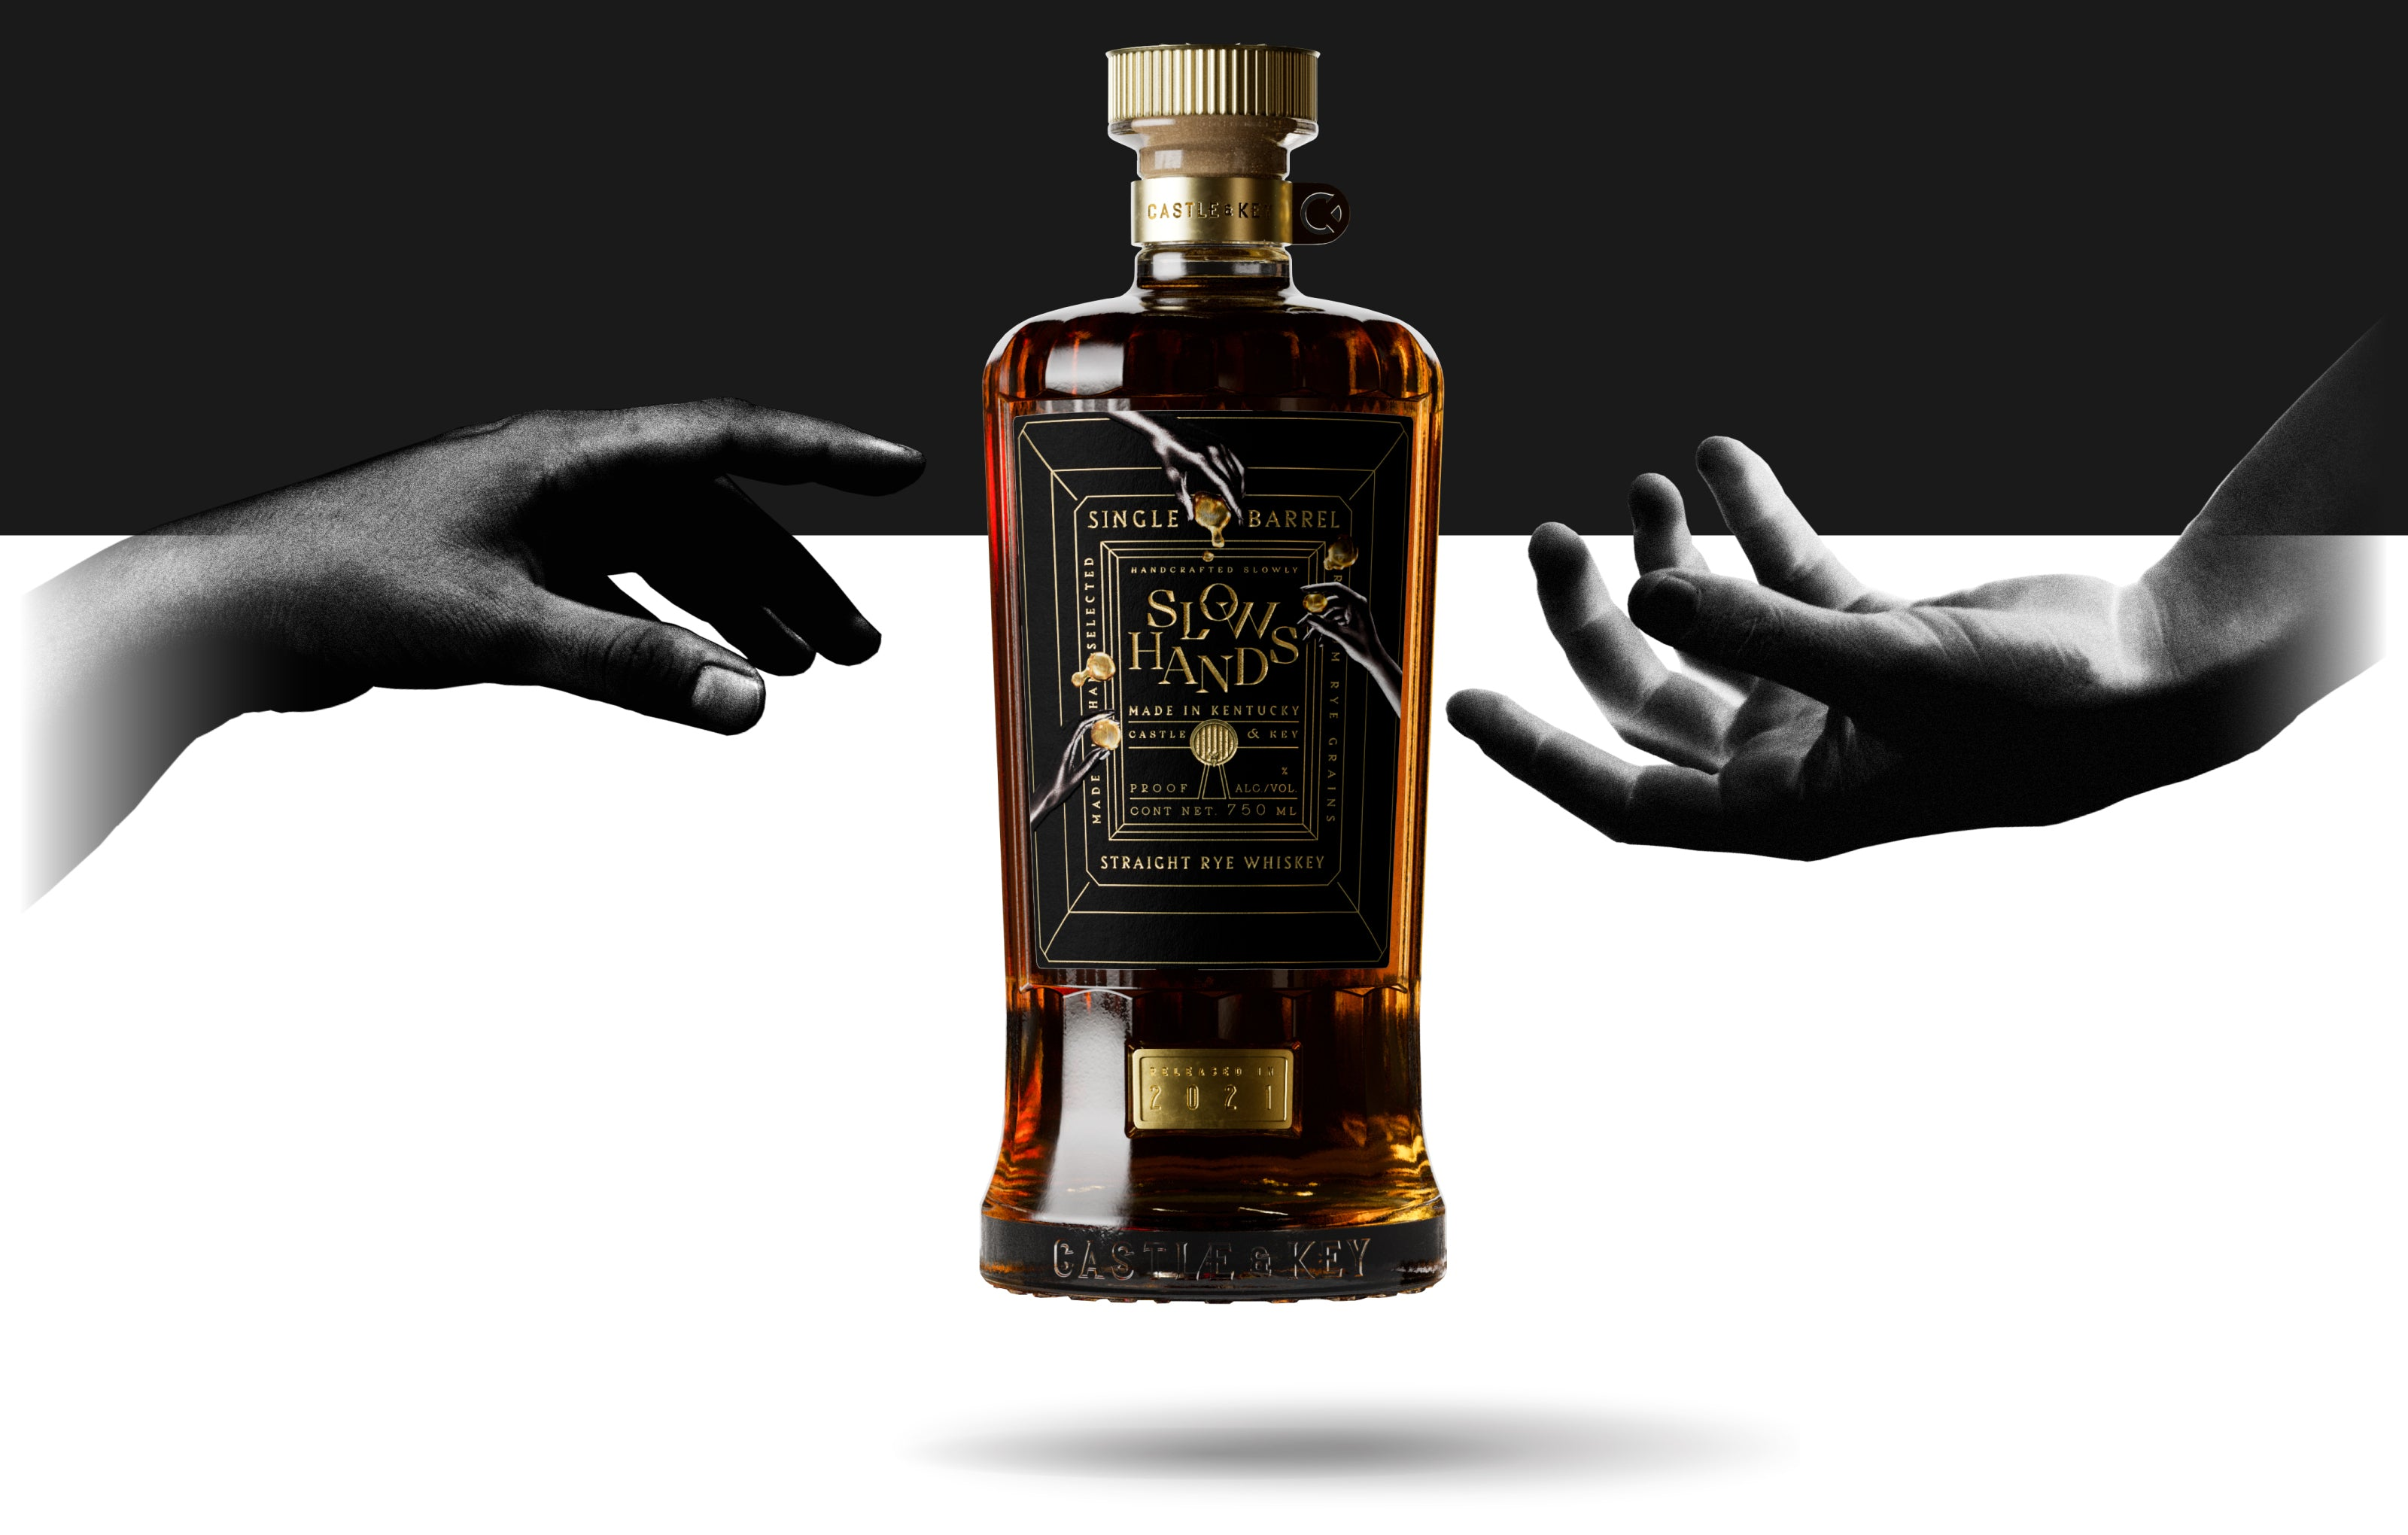 Slow Hands Rye Whiskey